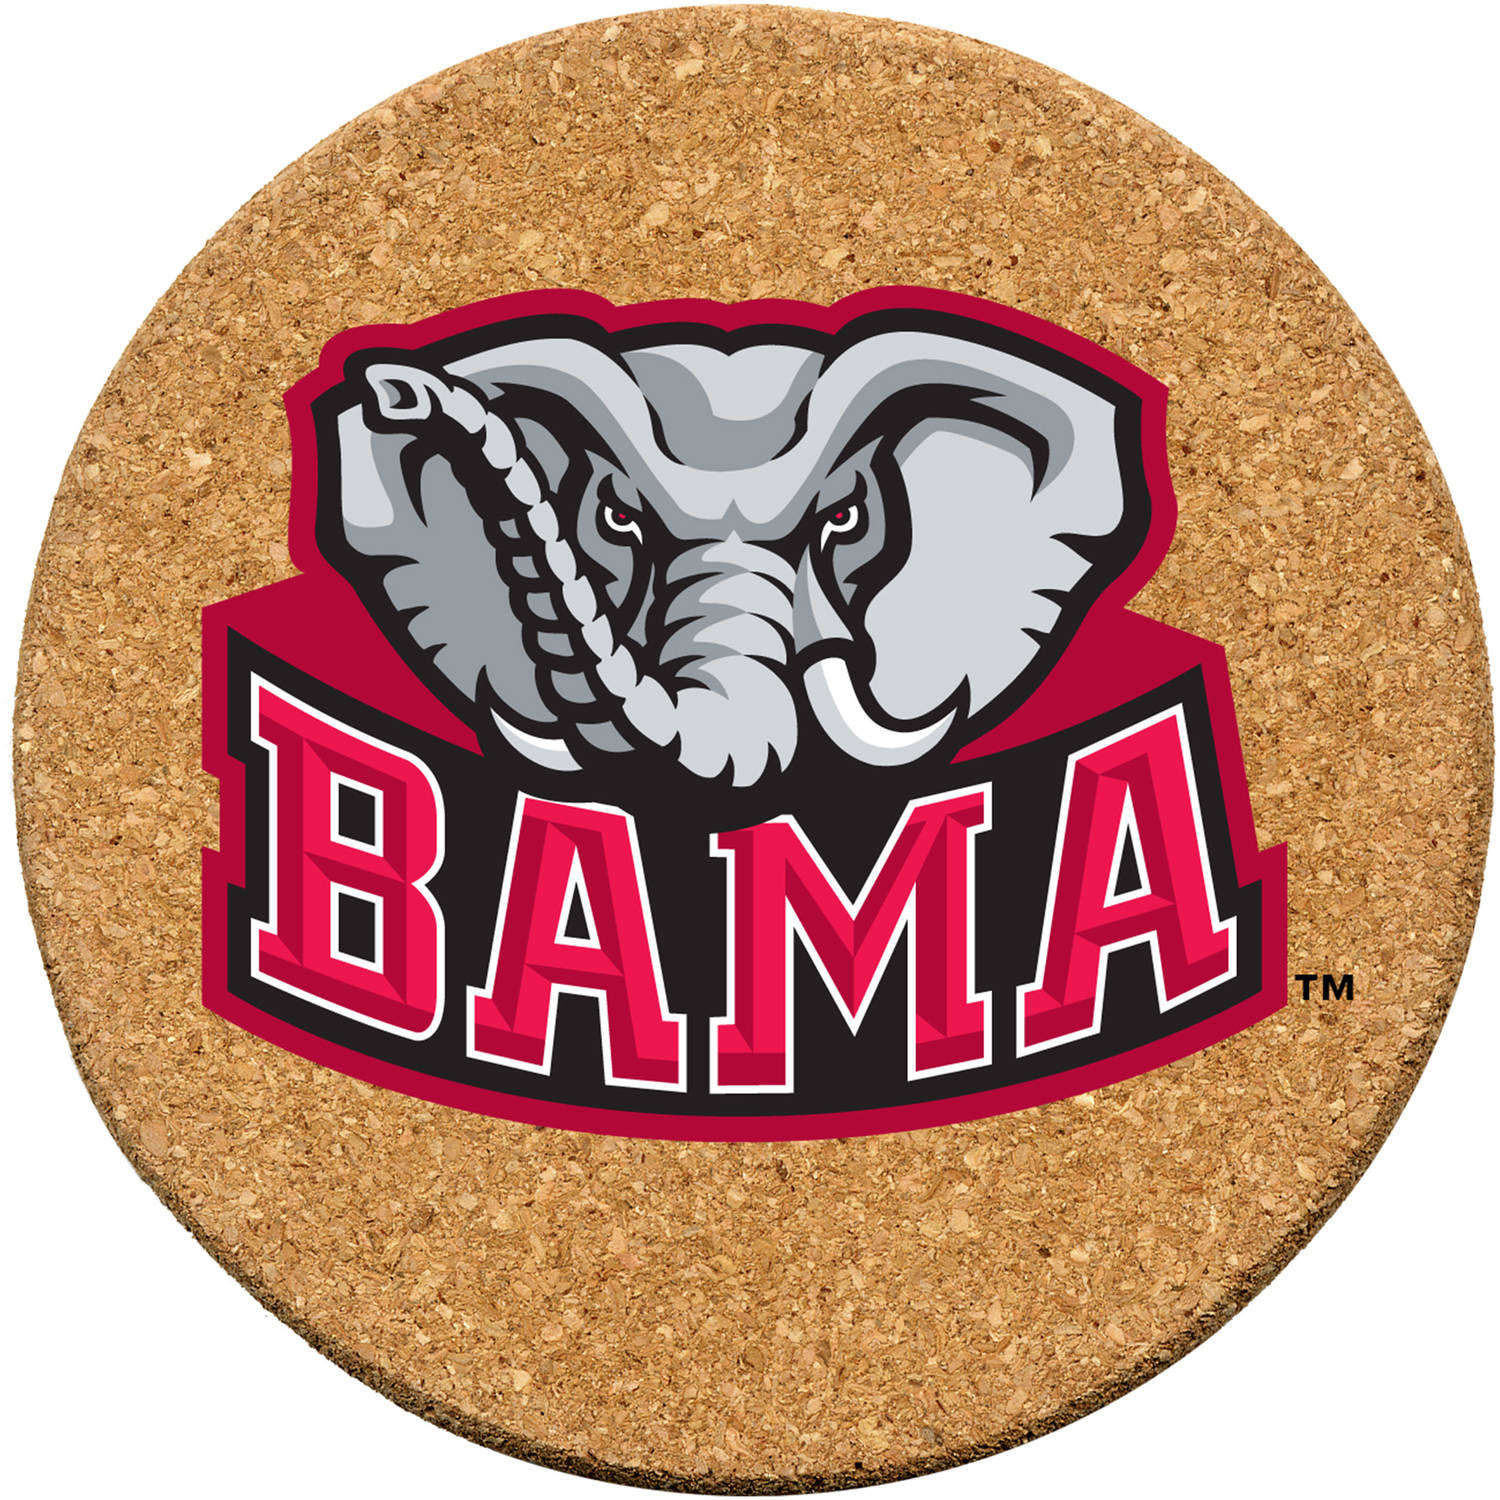 Set of Six Cork Coasters, University of Alabama